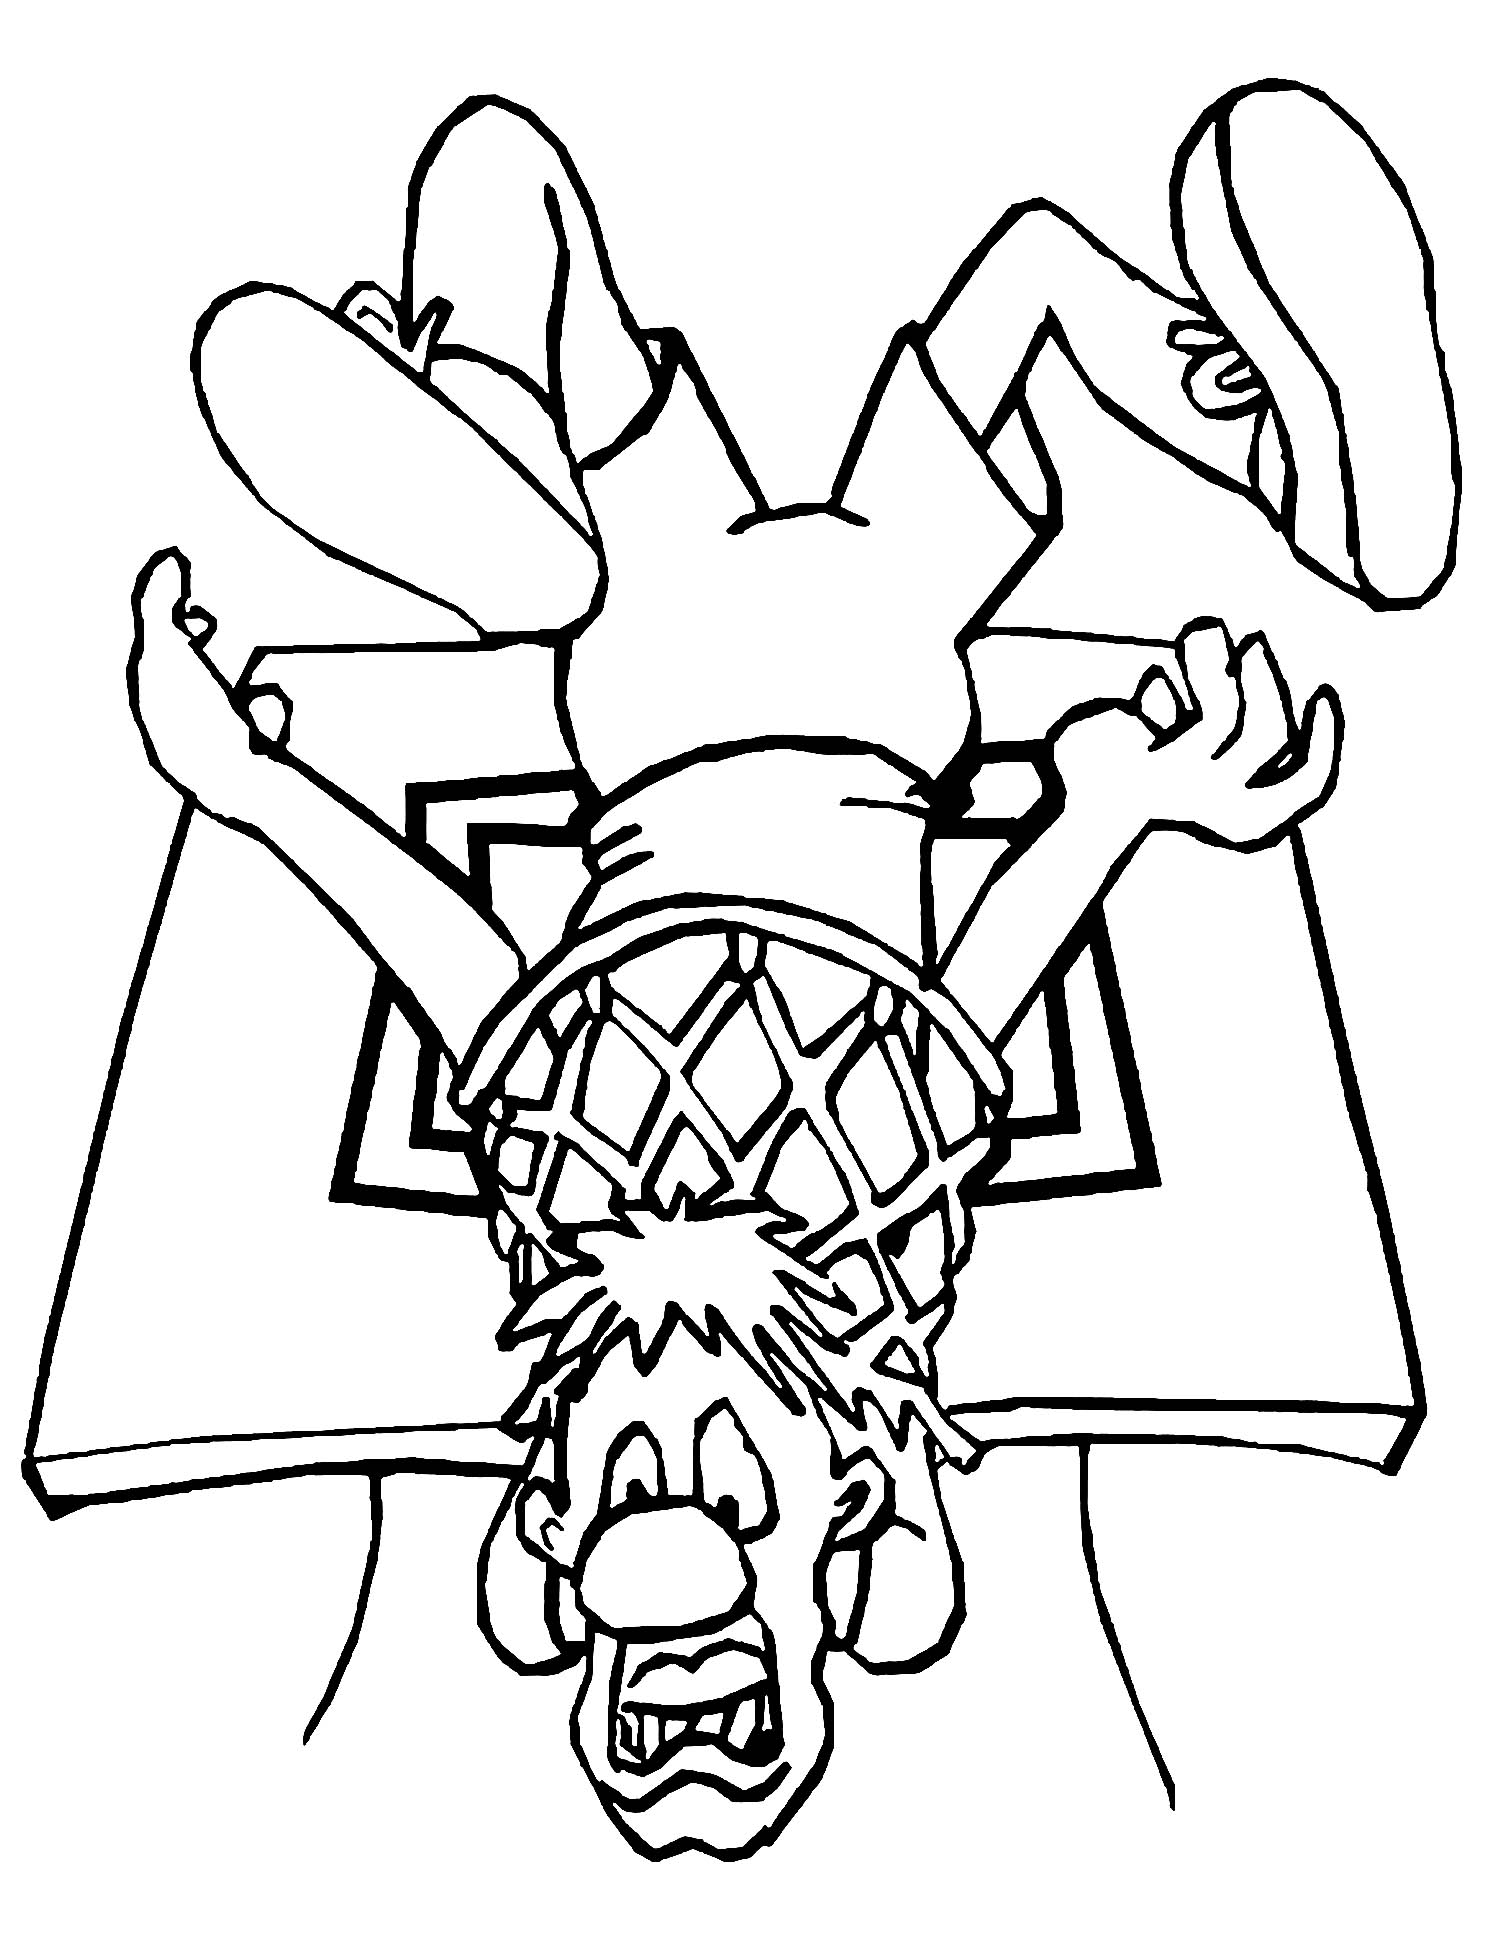 basketball pictures to color get this free basketball coloring pages to print 920519 basketball color pictures to